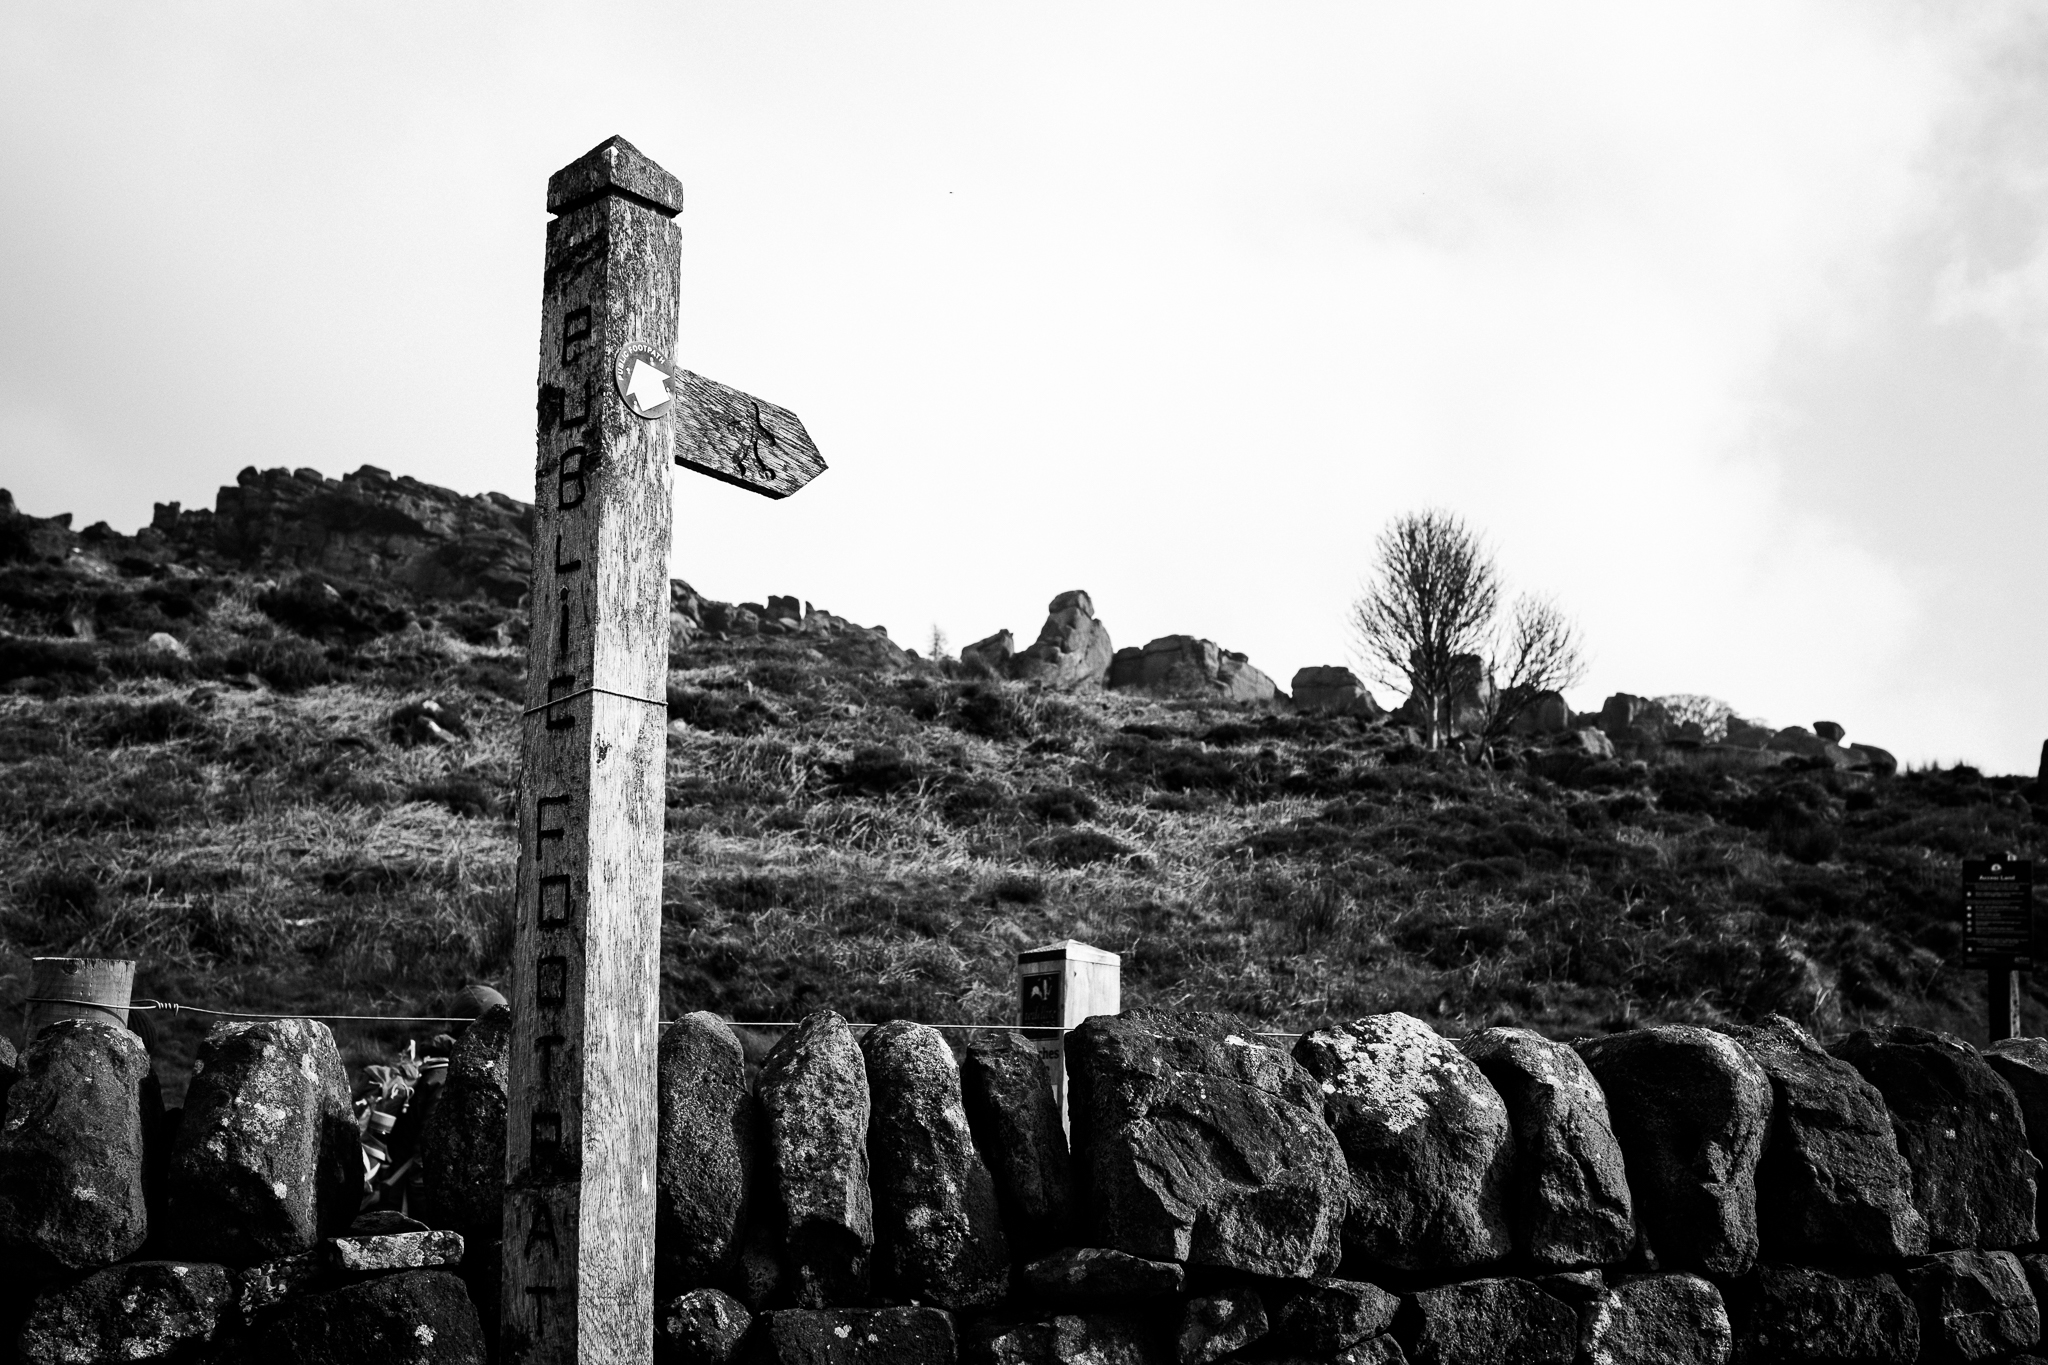 03.23.2017 Photowalk with Get Some Fresh Air The Roaches and Lud's Church Ludchurch Staffordshire Upper Hulme Ridge Rocks-2.jpg